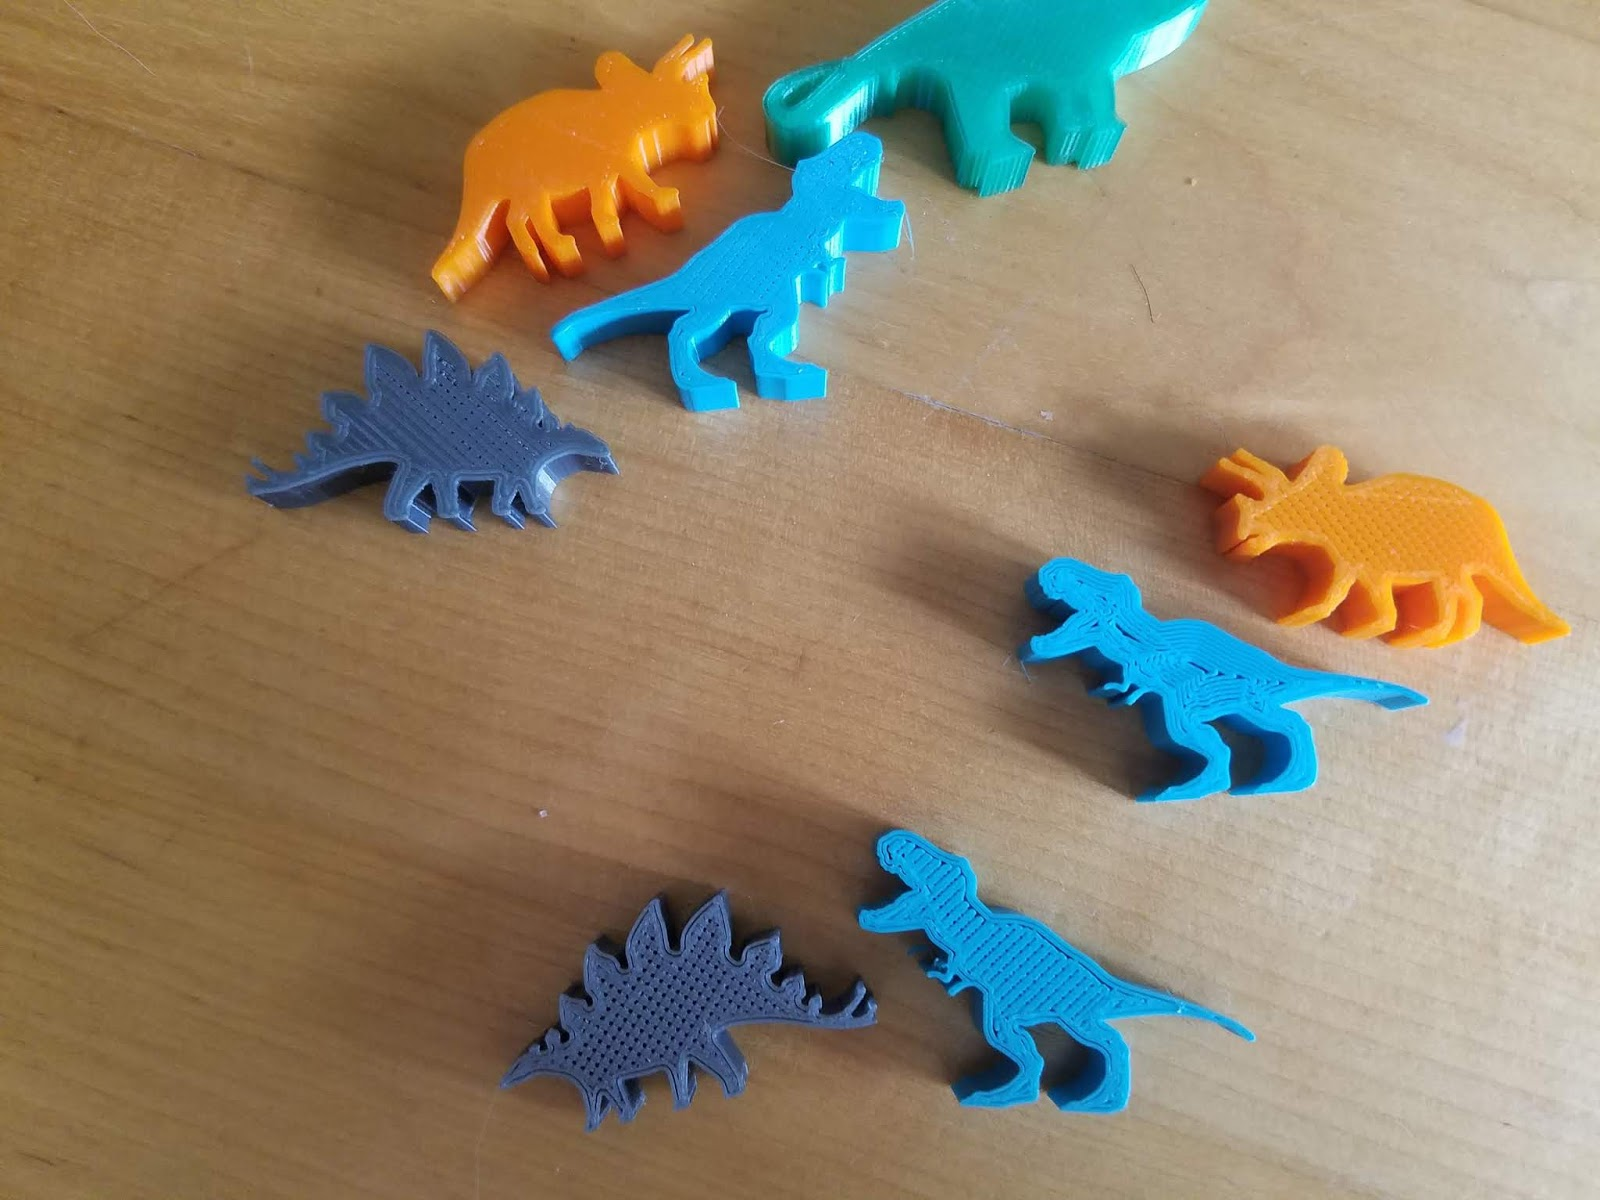 The Jimmerness - Adventures in 3D Printing